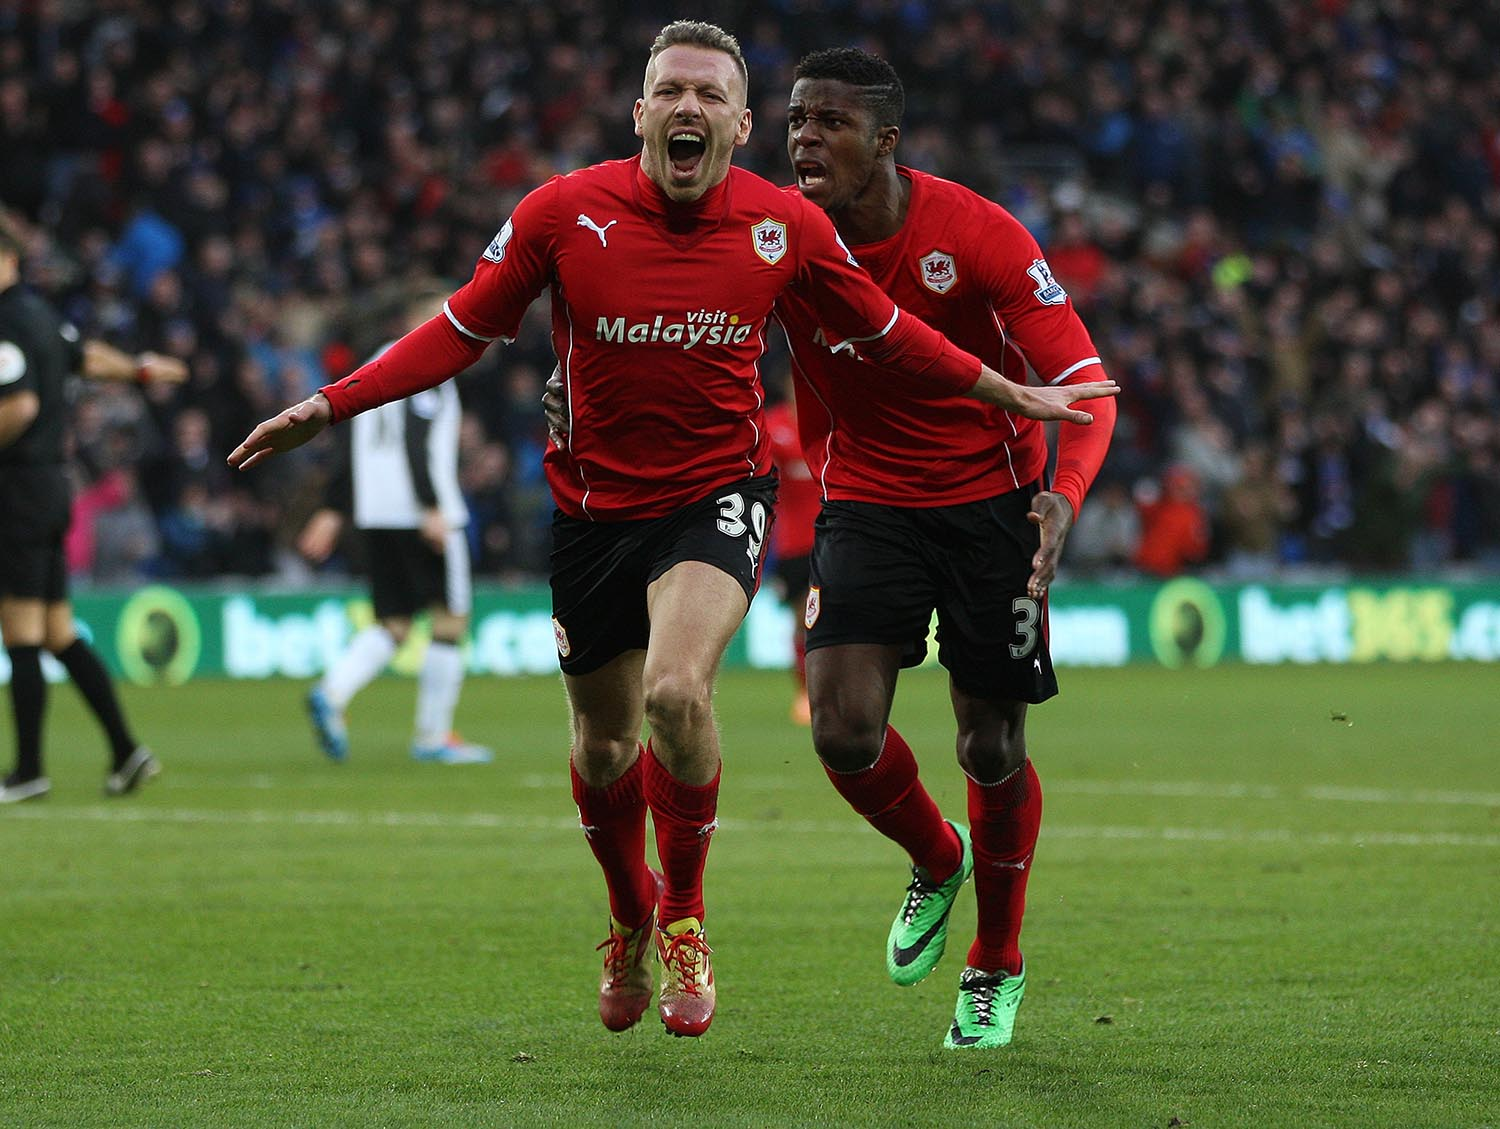 Cardiff City's Craig Bellamy celebrates after scoring